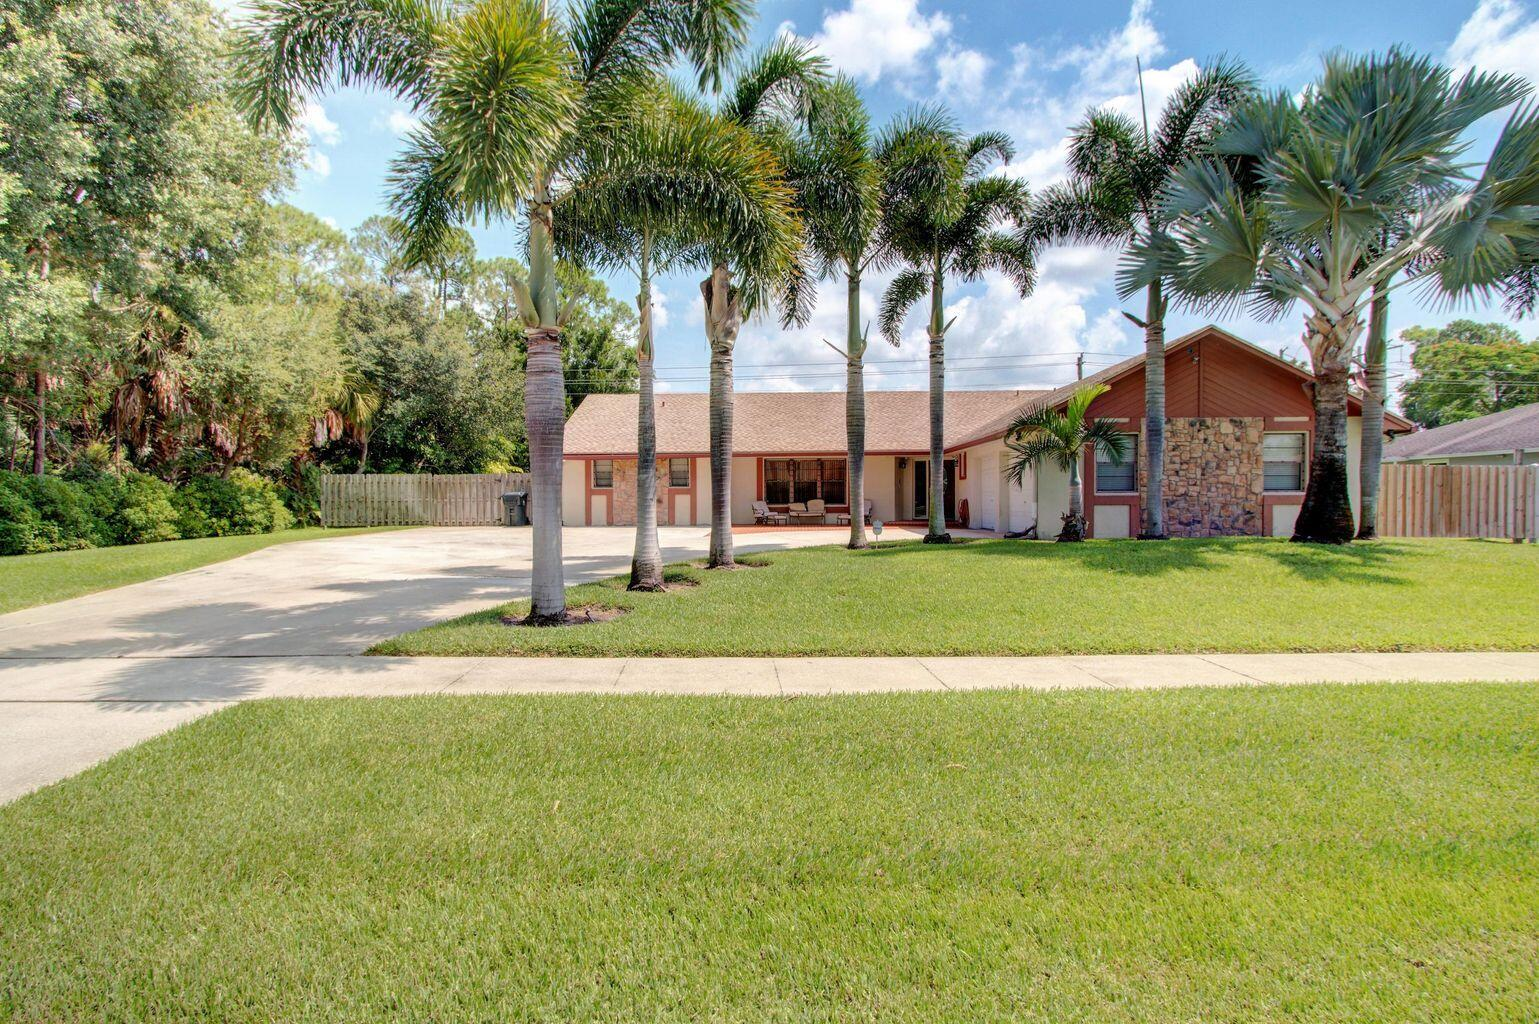 12289  Old Country Road  For Sale 10709499, FL